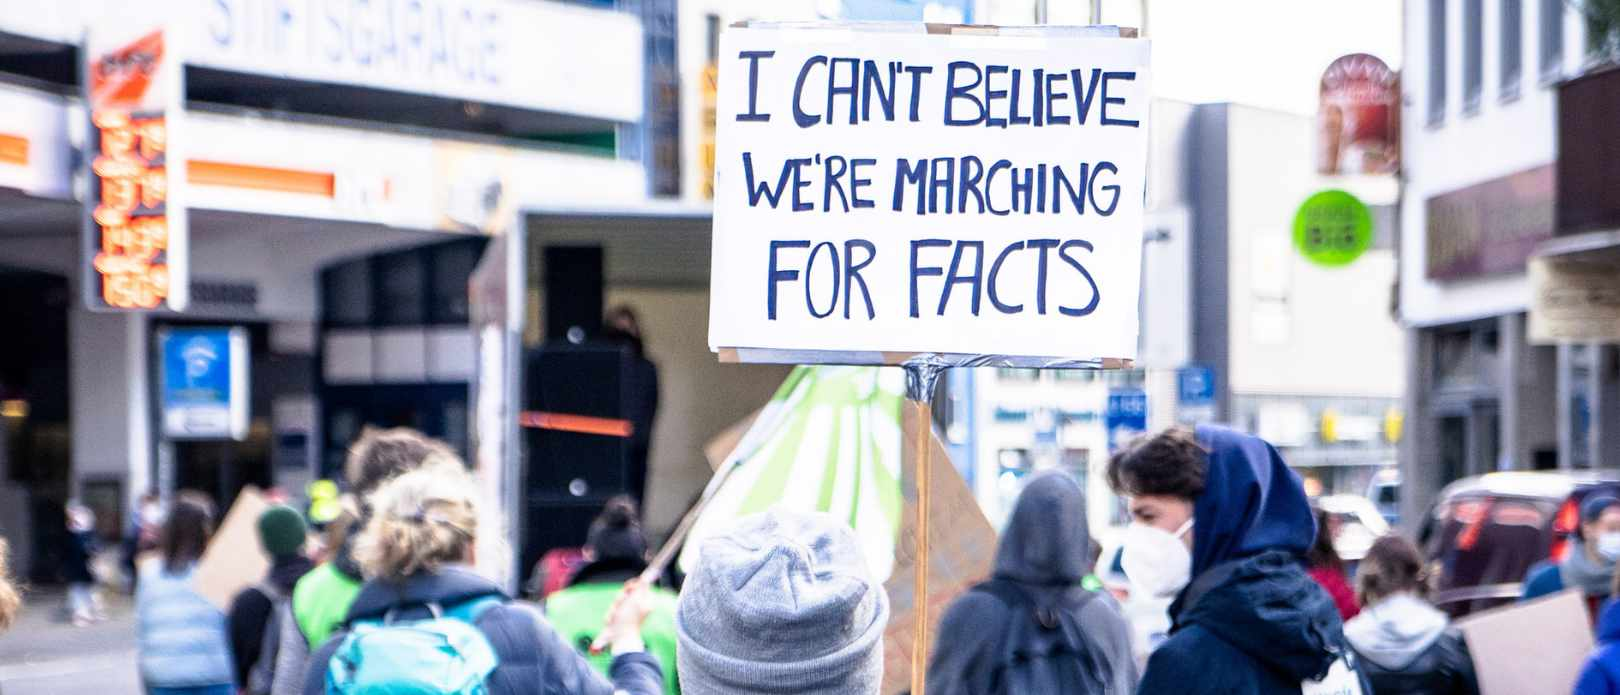 People marching for - Fridays For Future Bonn, 2021-03-19